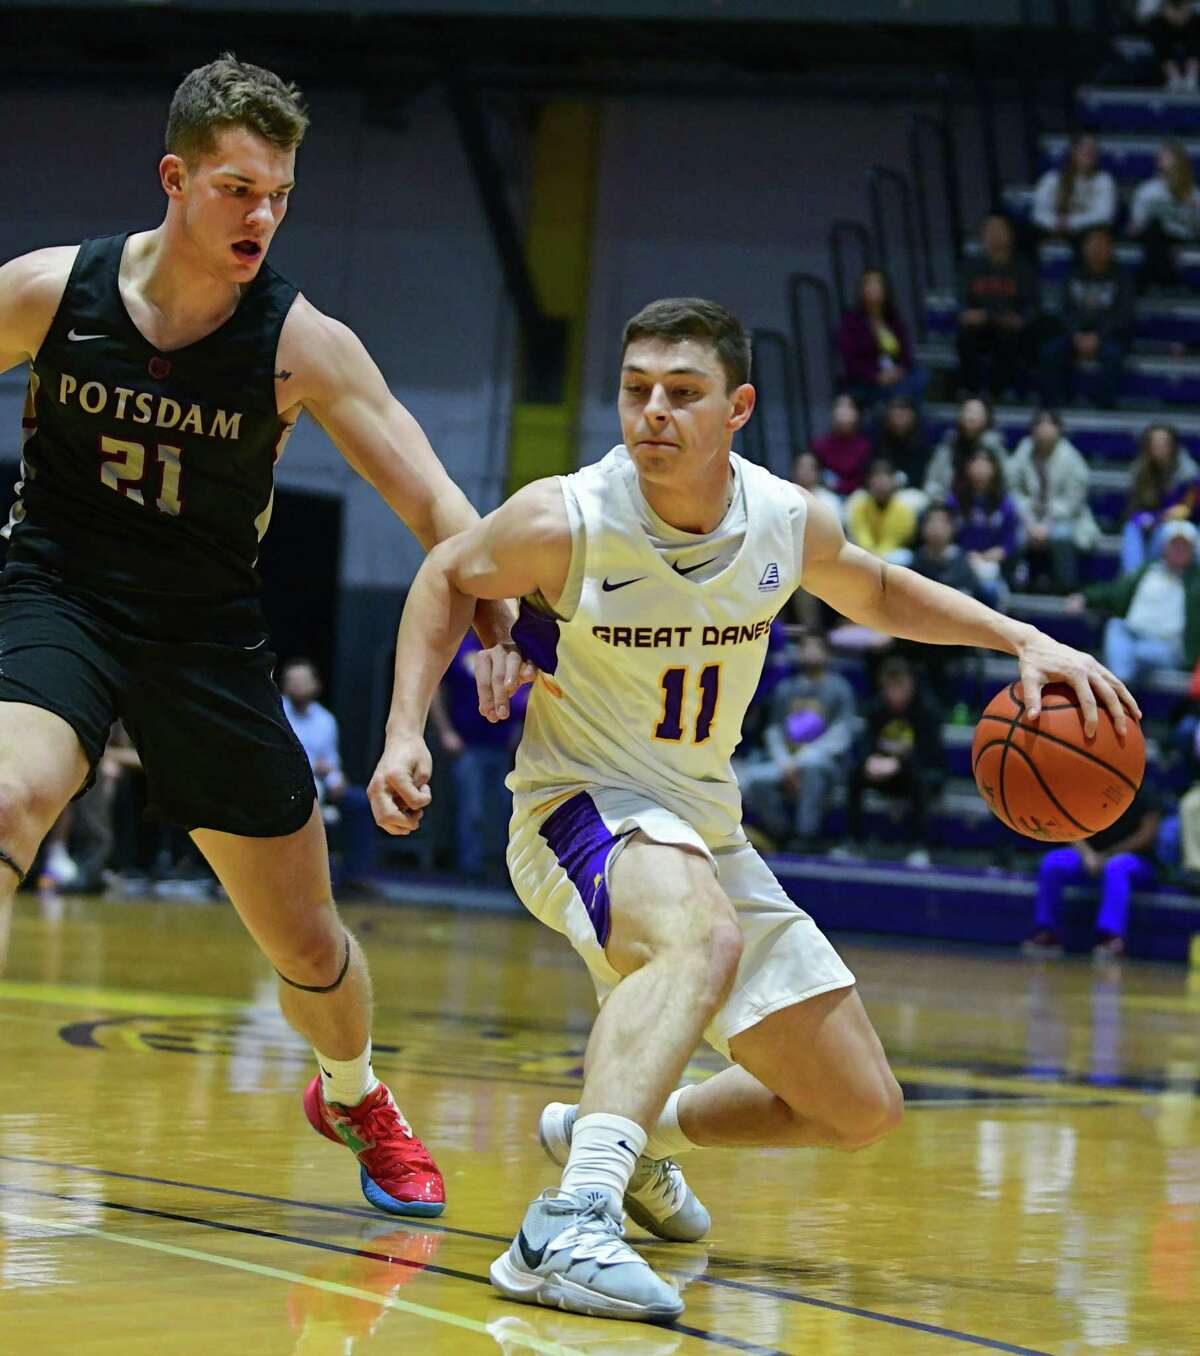 University at Albany's Cameron Healy is guarded by Potsdam's Aaron Armstrong during a basketball game at SEFCU Arena on Tuesday, Nov. 19, 2019 in Albany, N.Y. (Lori Van Buren/Times Union)